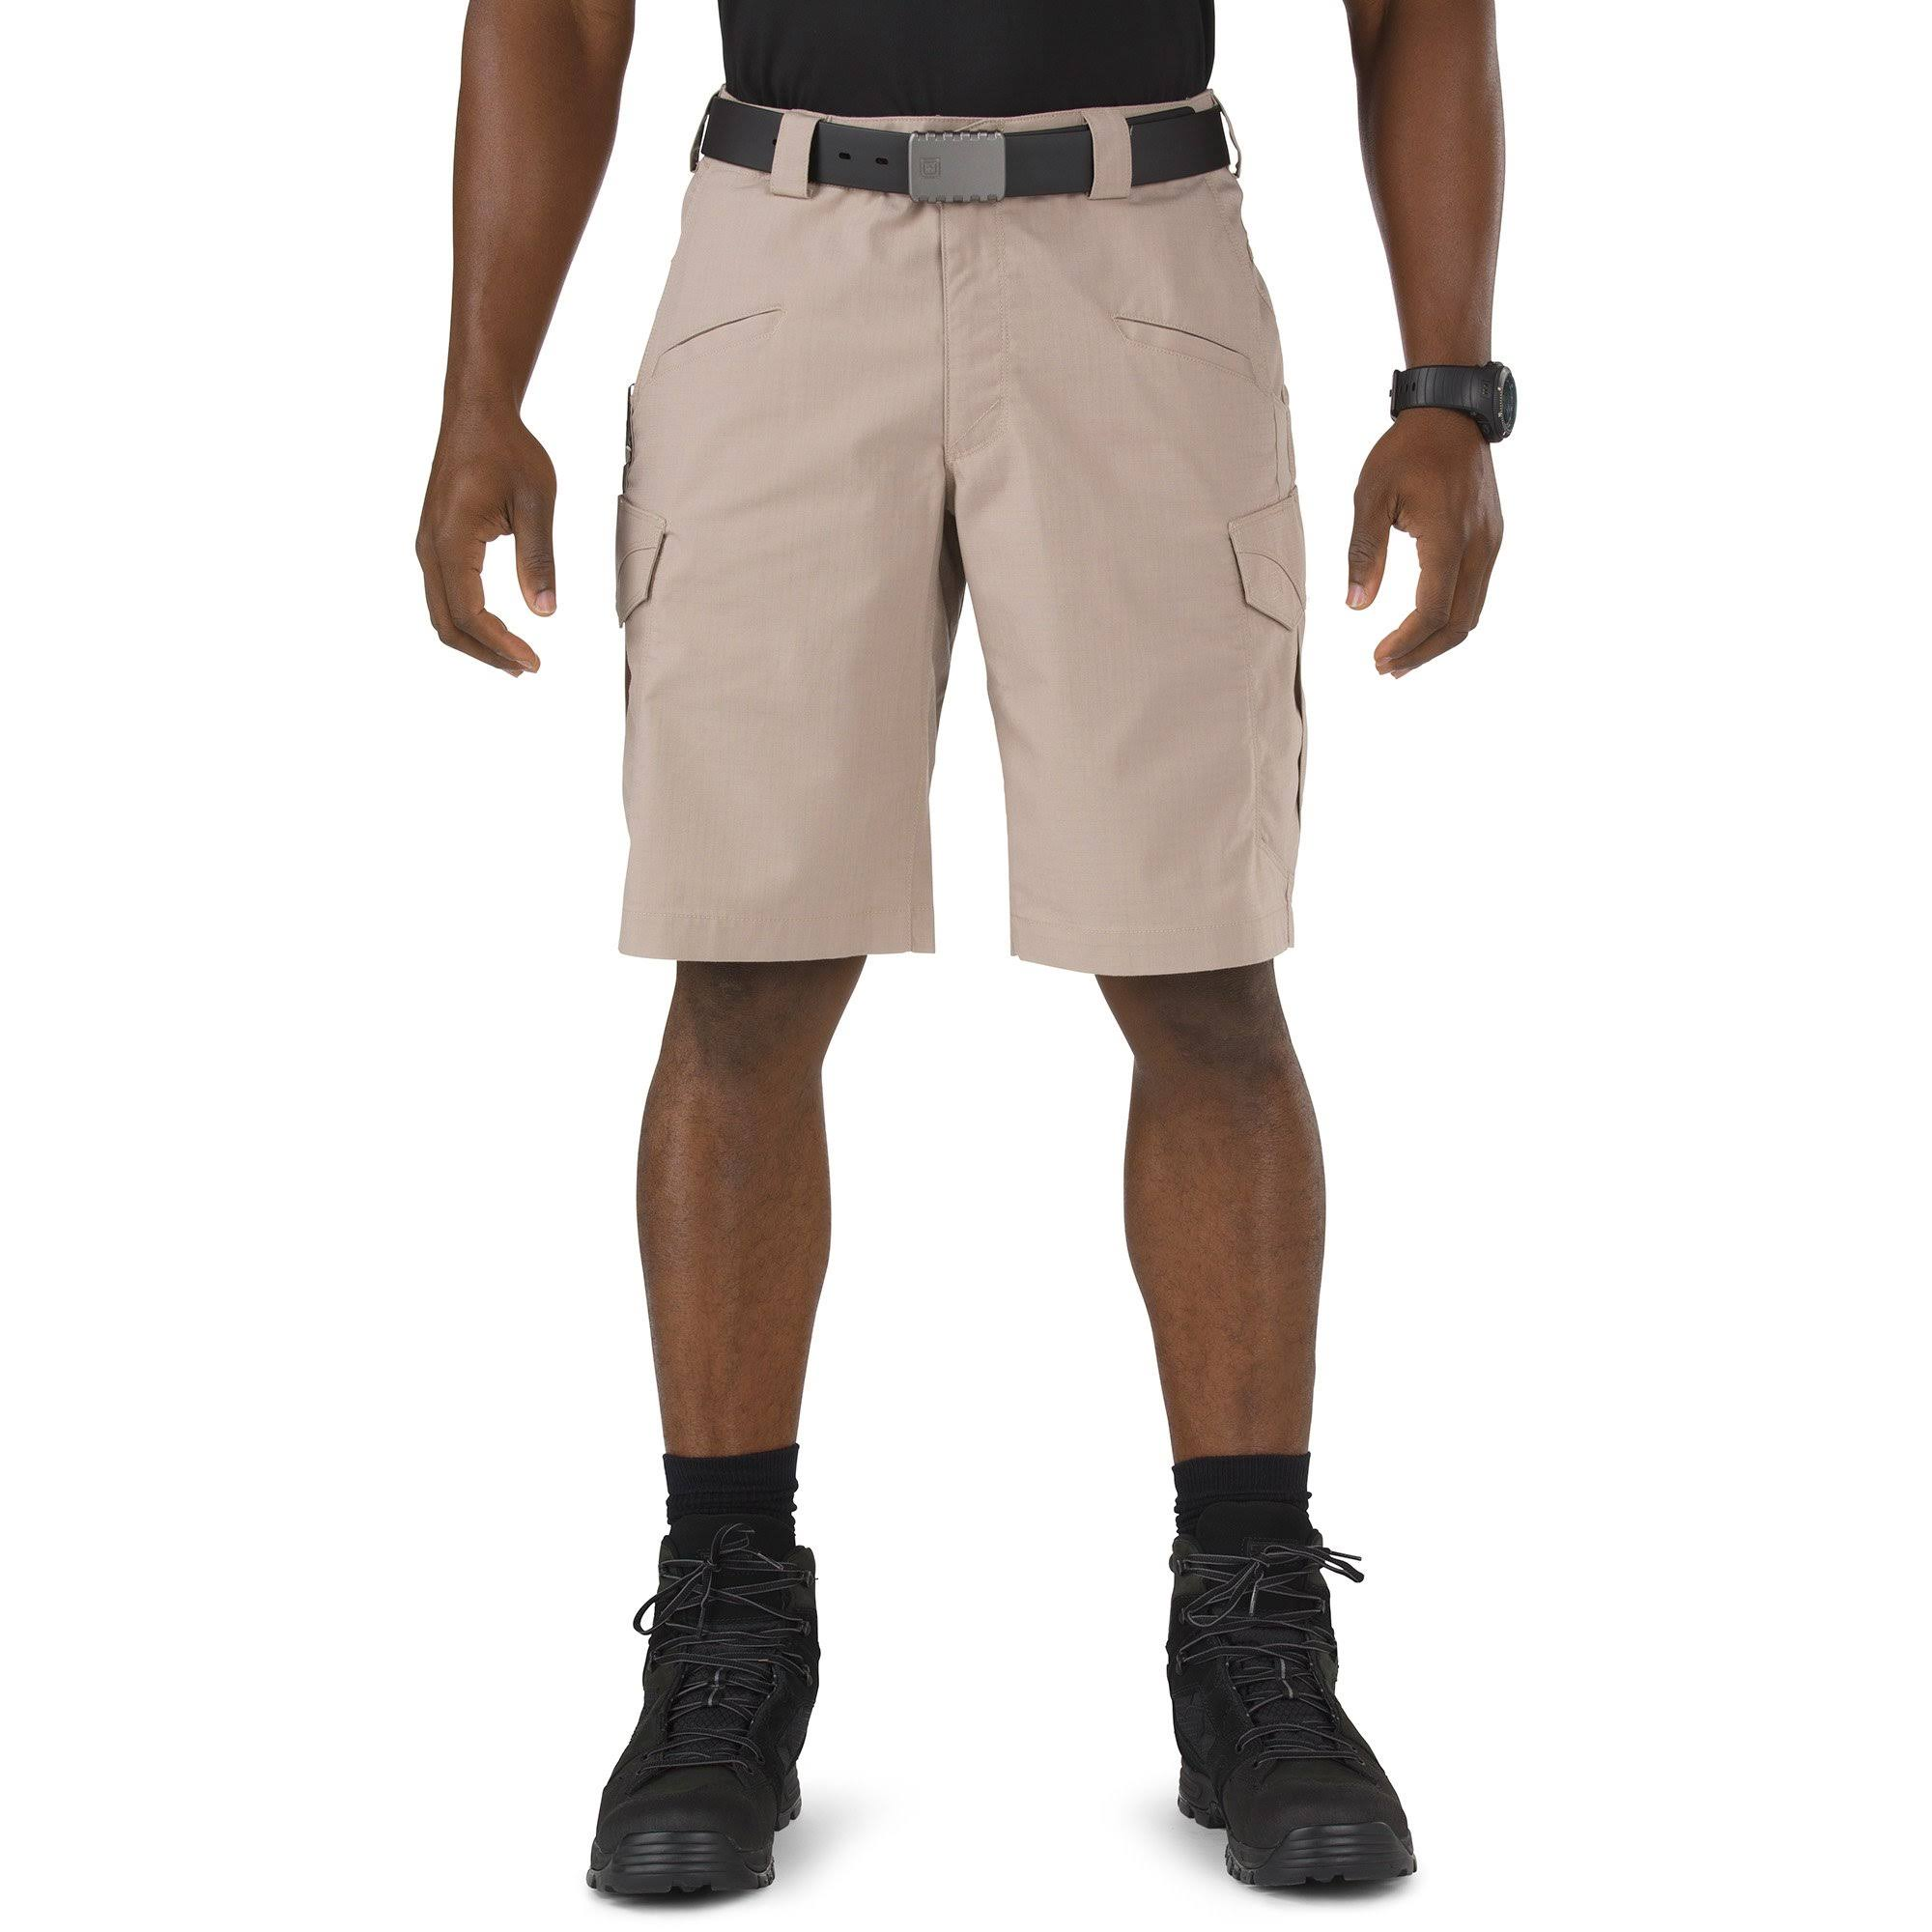 5.11 Tactical Stryke Shorts - Khaki - 73327-055-44